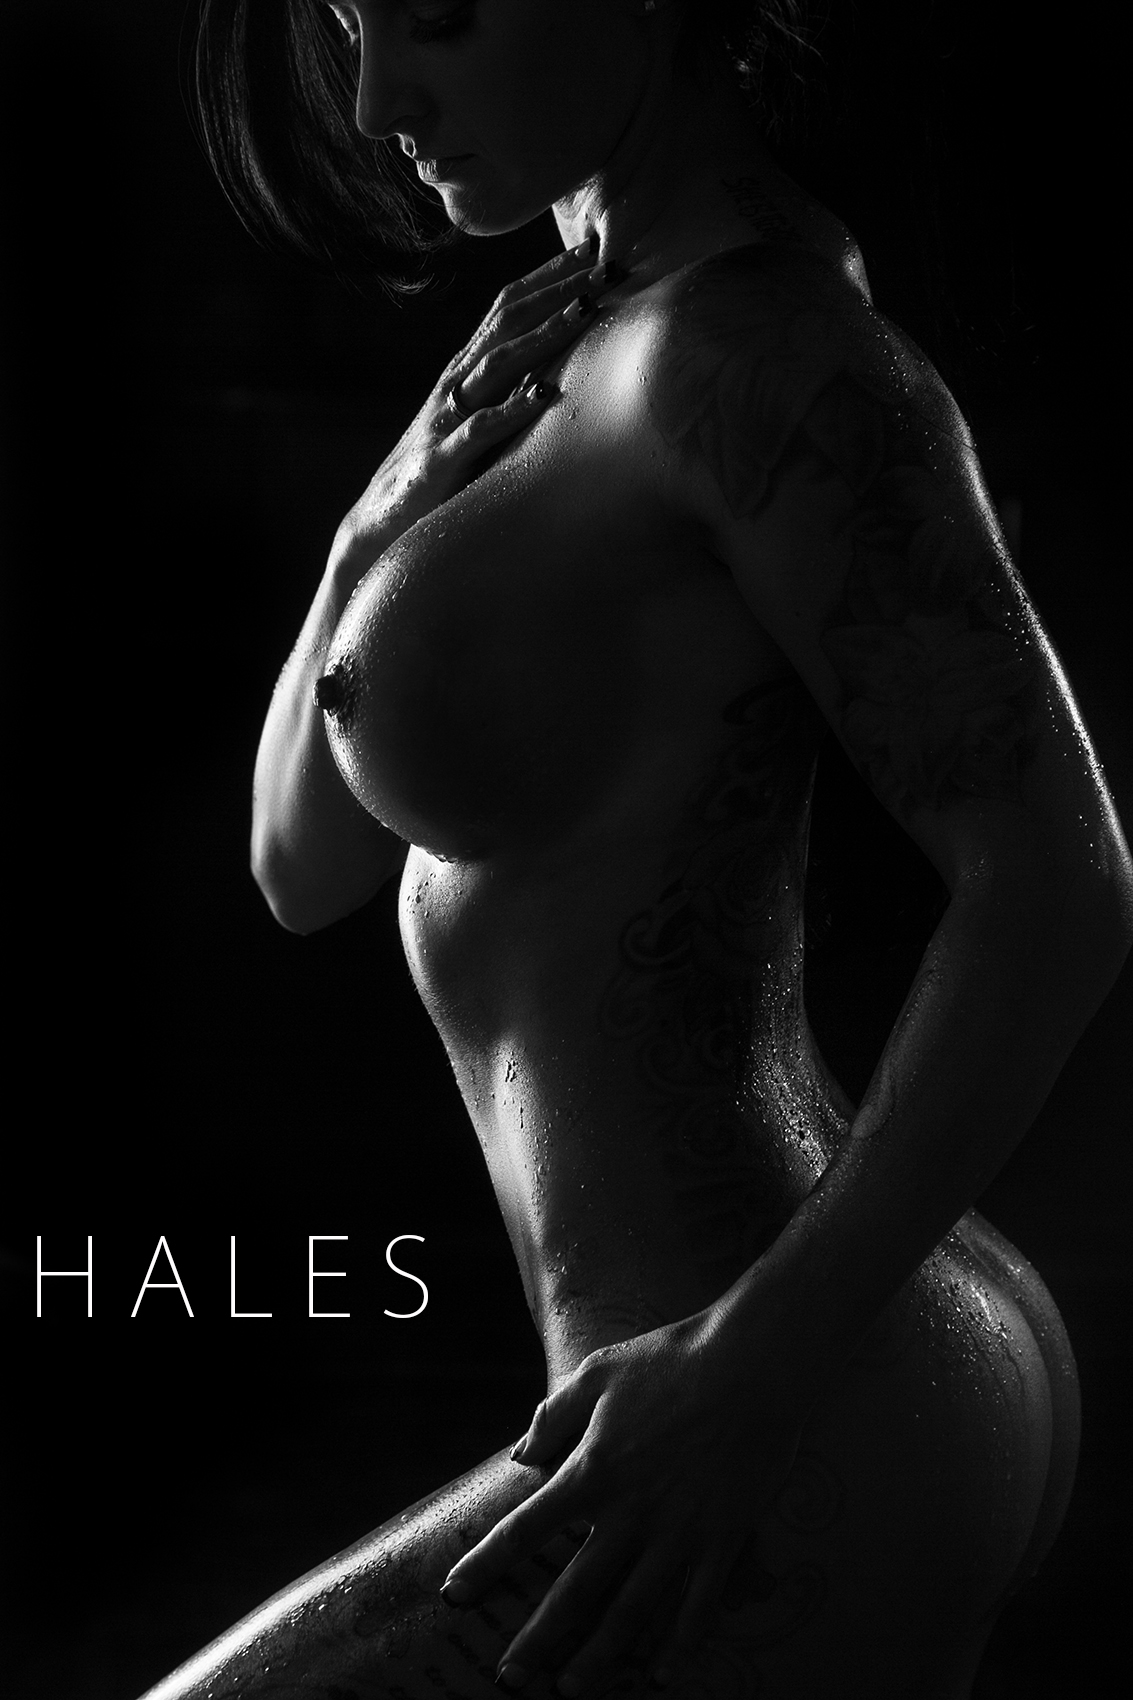 Artistic Nudes with Don Hales